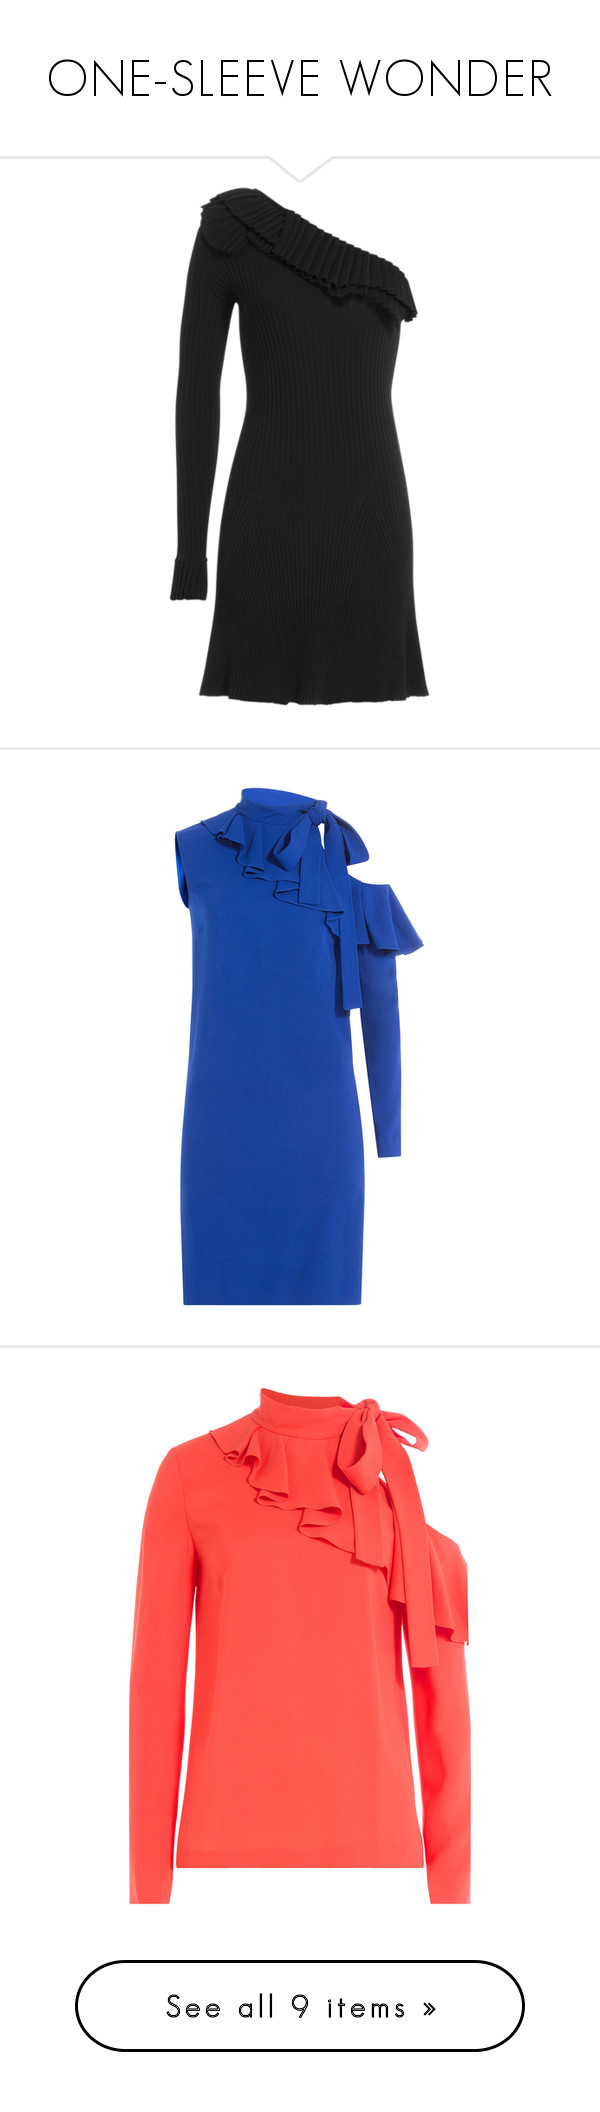 """""""ONE-SLEEVE WONDER"""" by stylebop ❤ liked on Polyvore featuring dresses, black, long sleeve dresses, one shoulder long sleeve dress, one sleeve dress, long sleeve pleated dress, pleated mini dress, blue, sleeved dresses and blue fitted dress"""